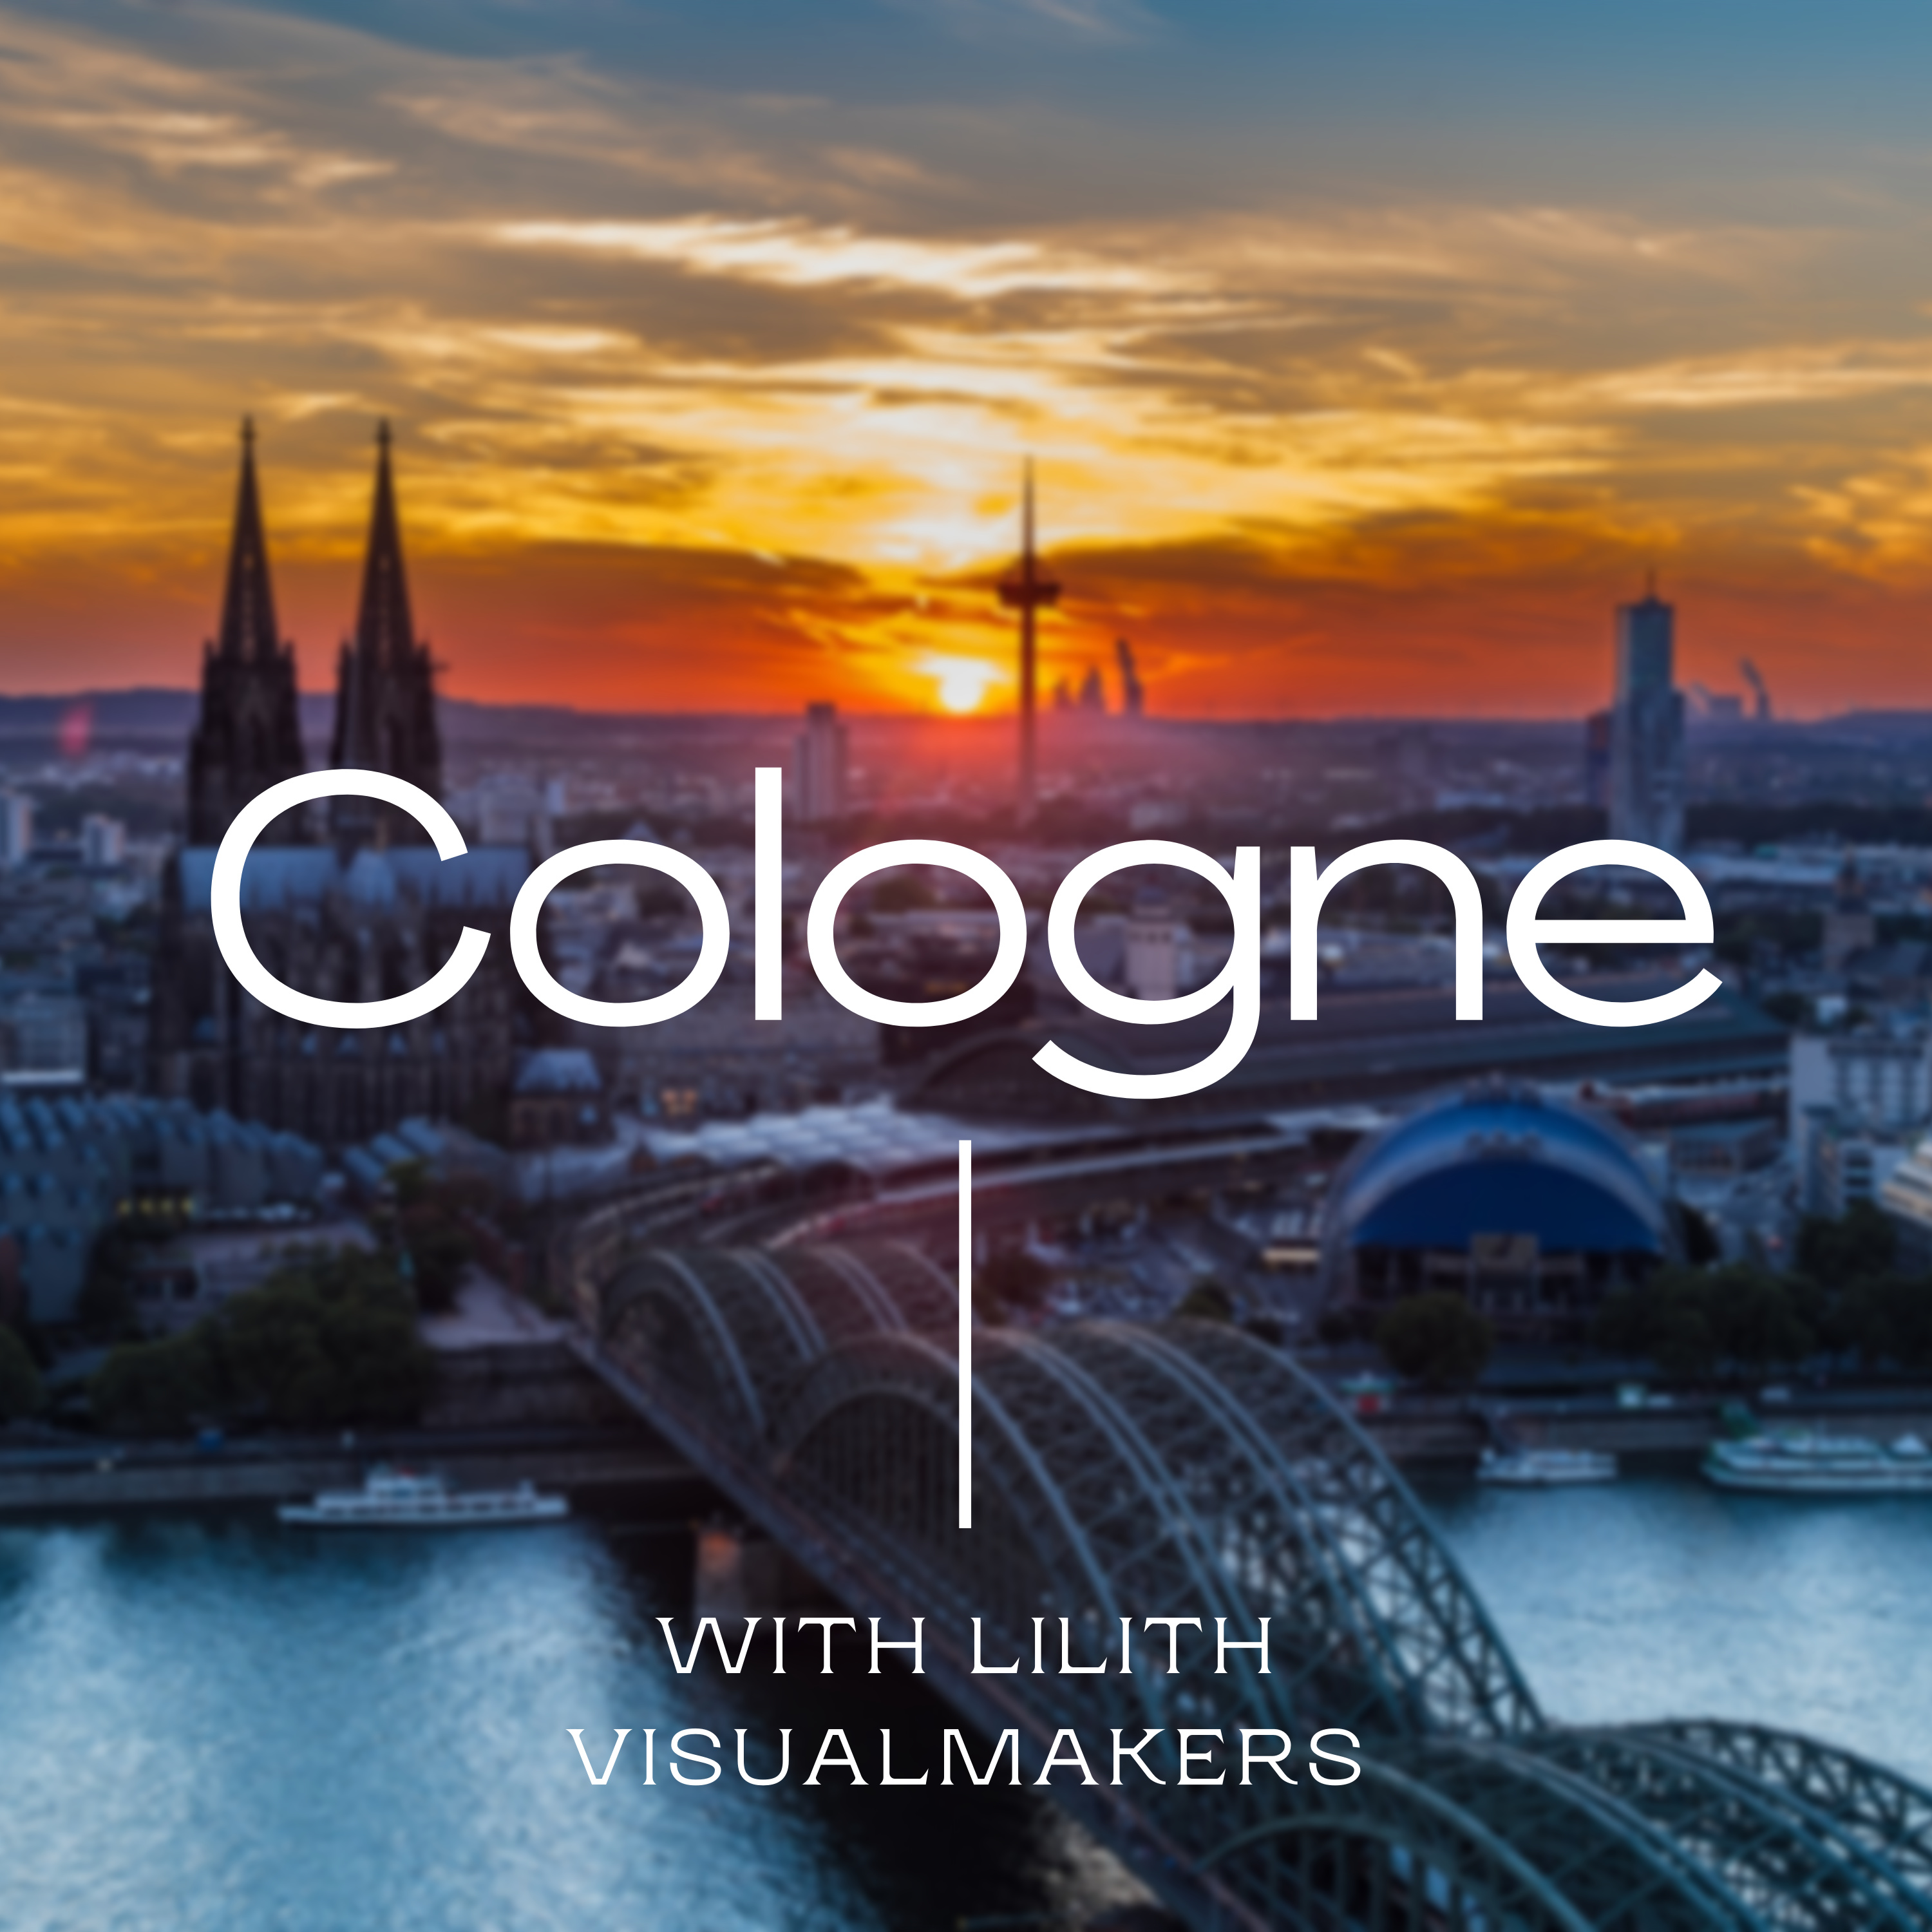 #3: In Cologne, I meet with Lilith to know more about VisualMakers